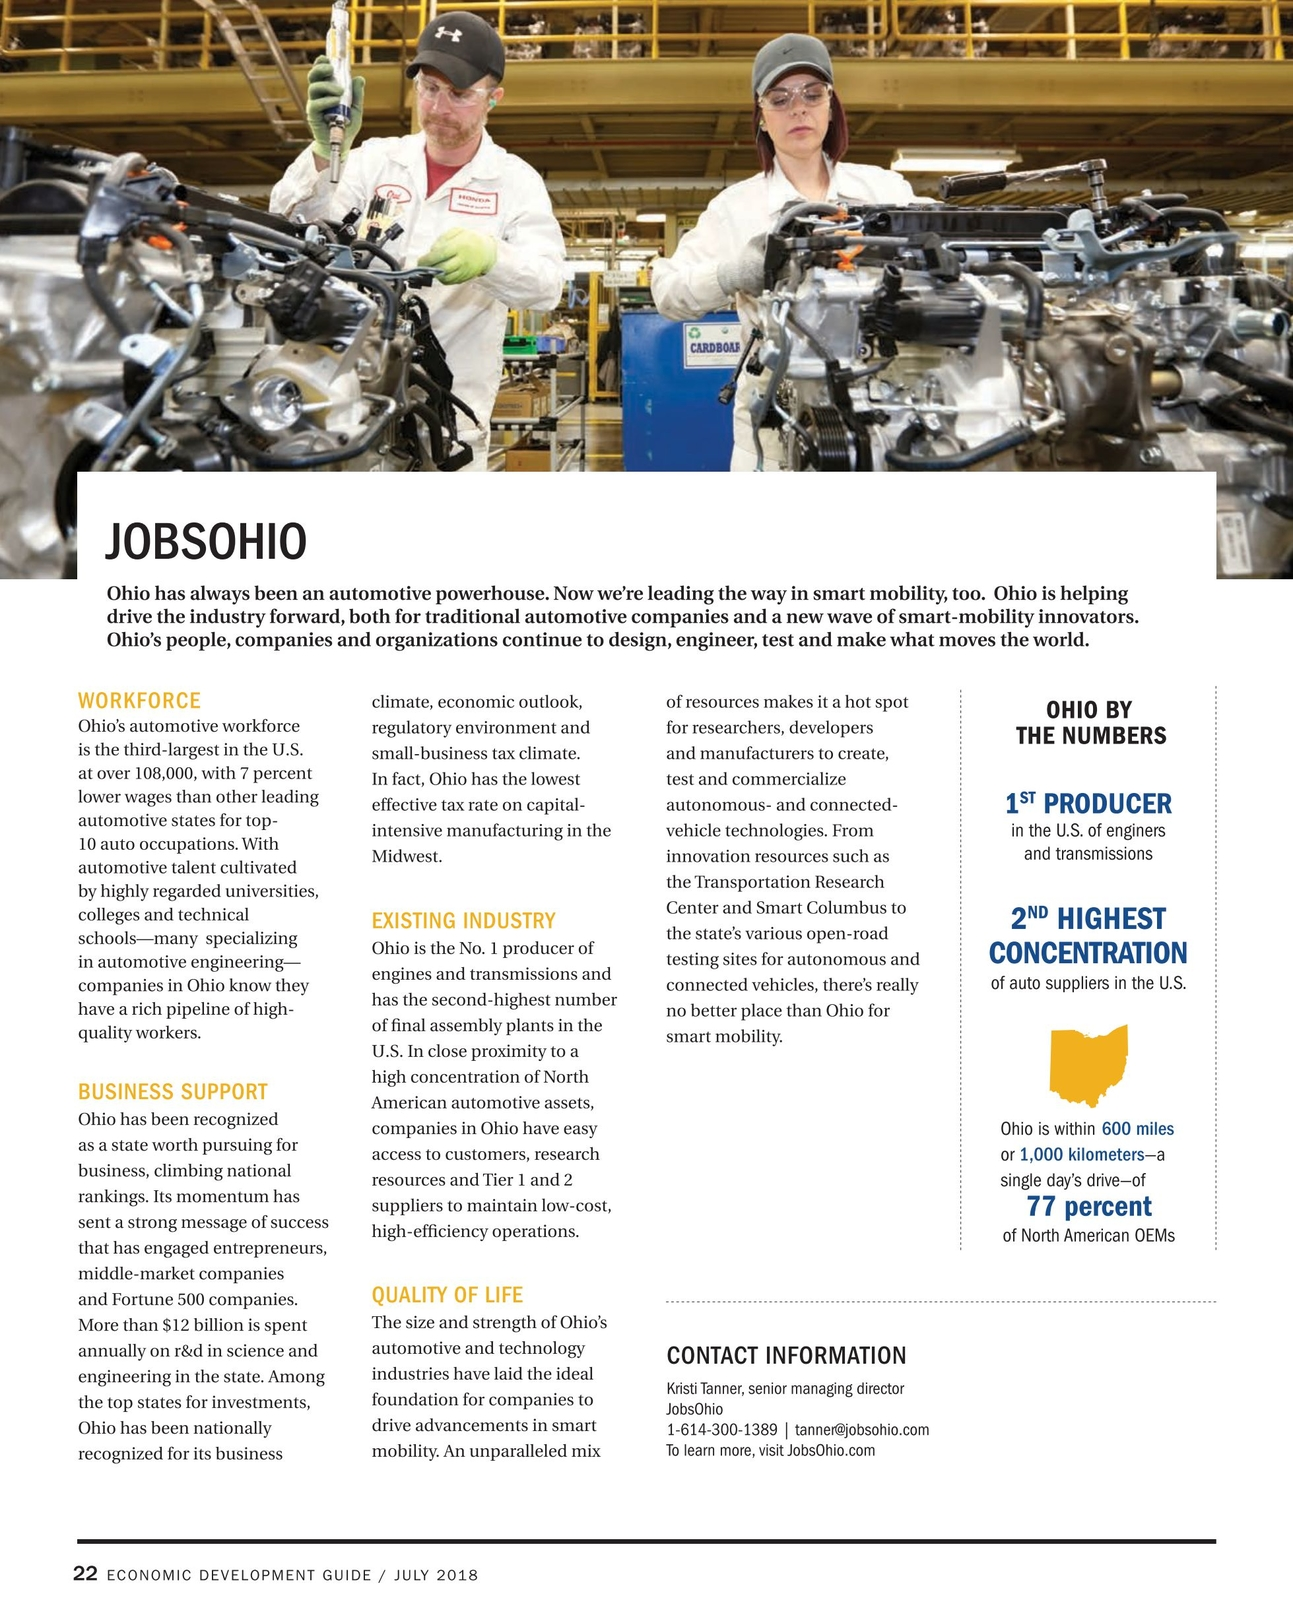 Guide to Economic Development in the Global Auto Industry